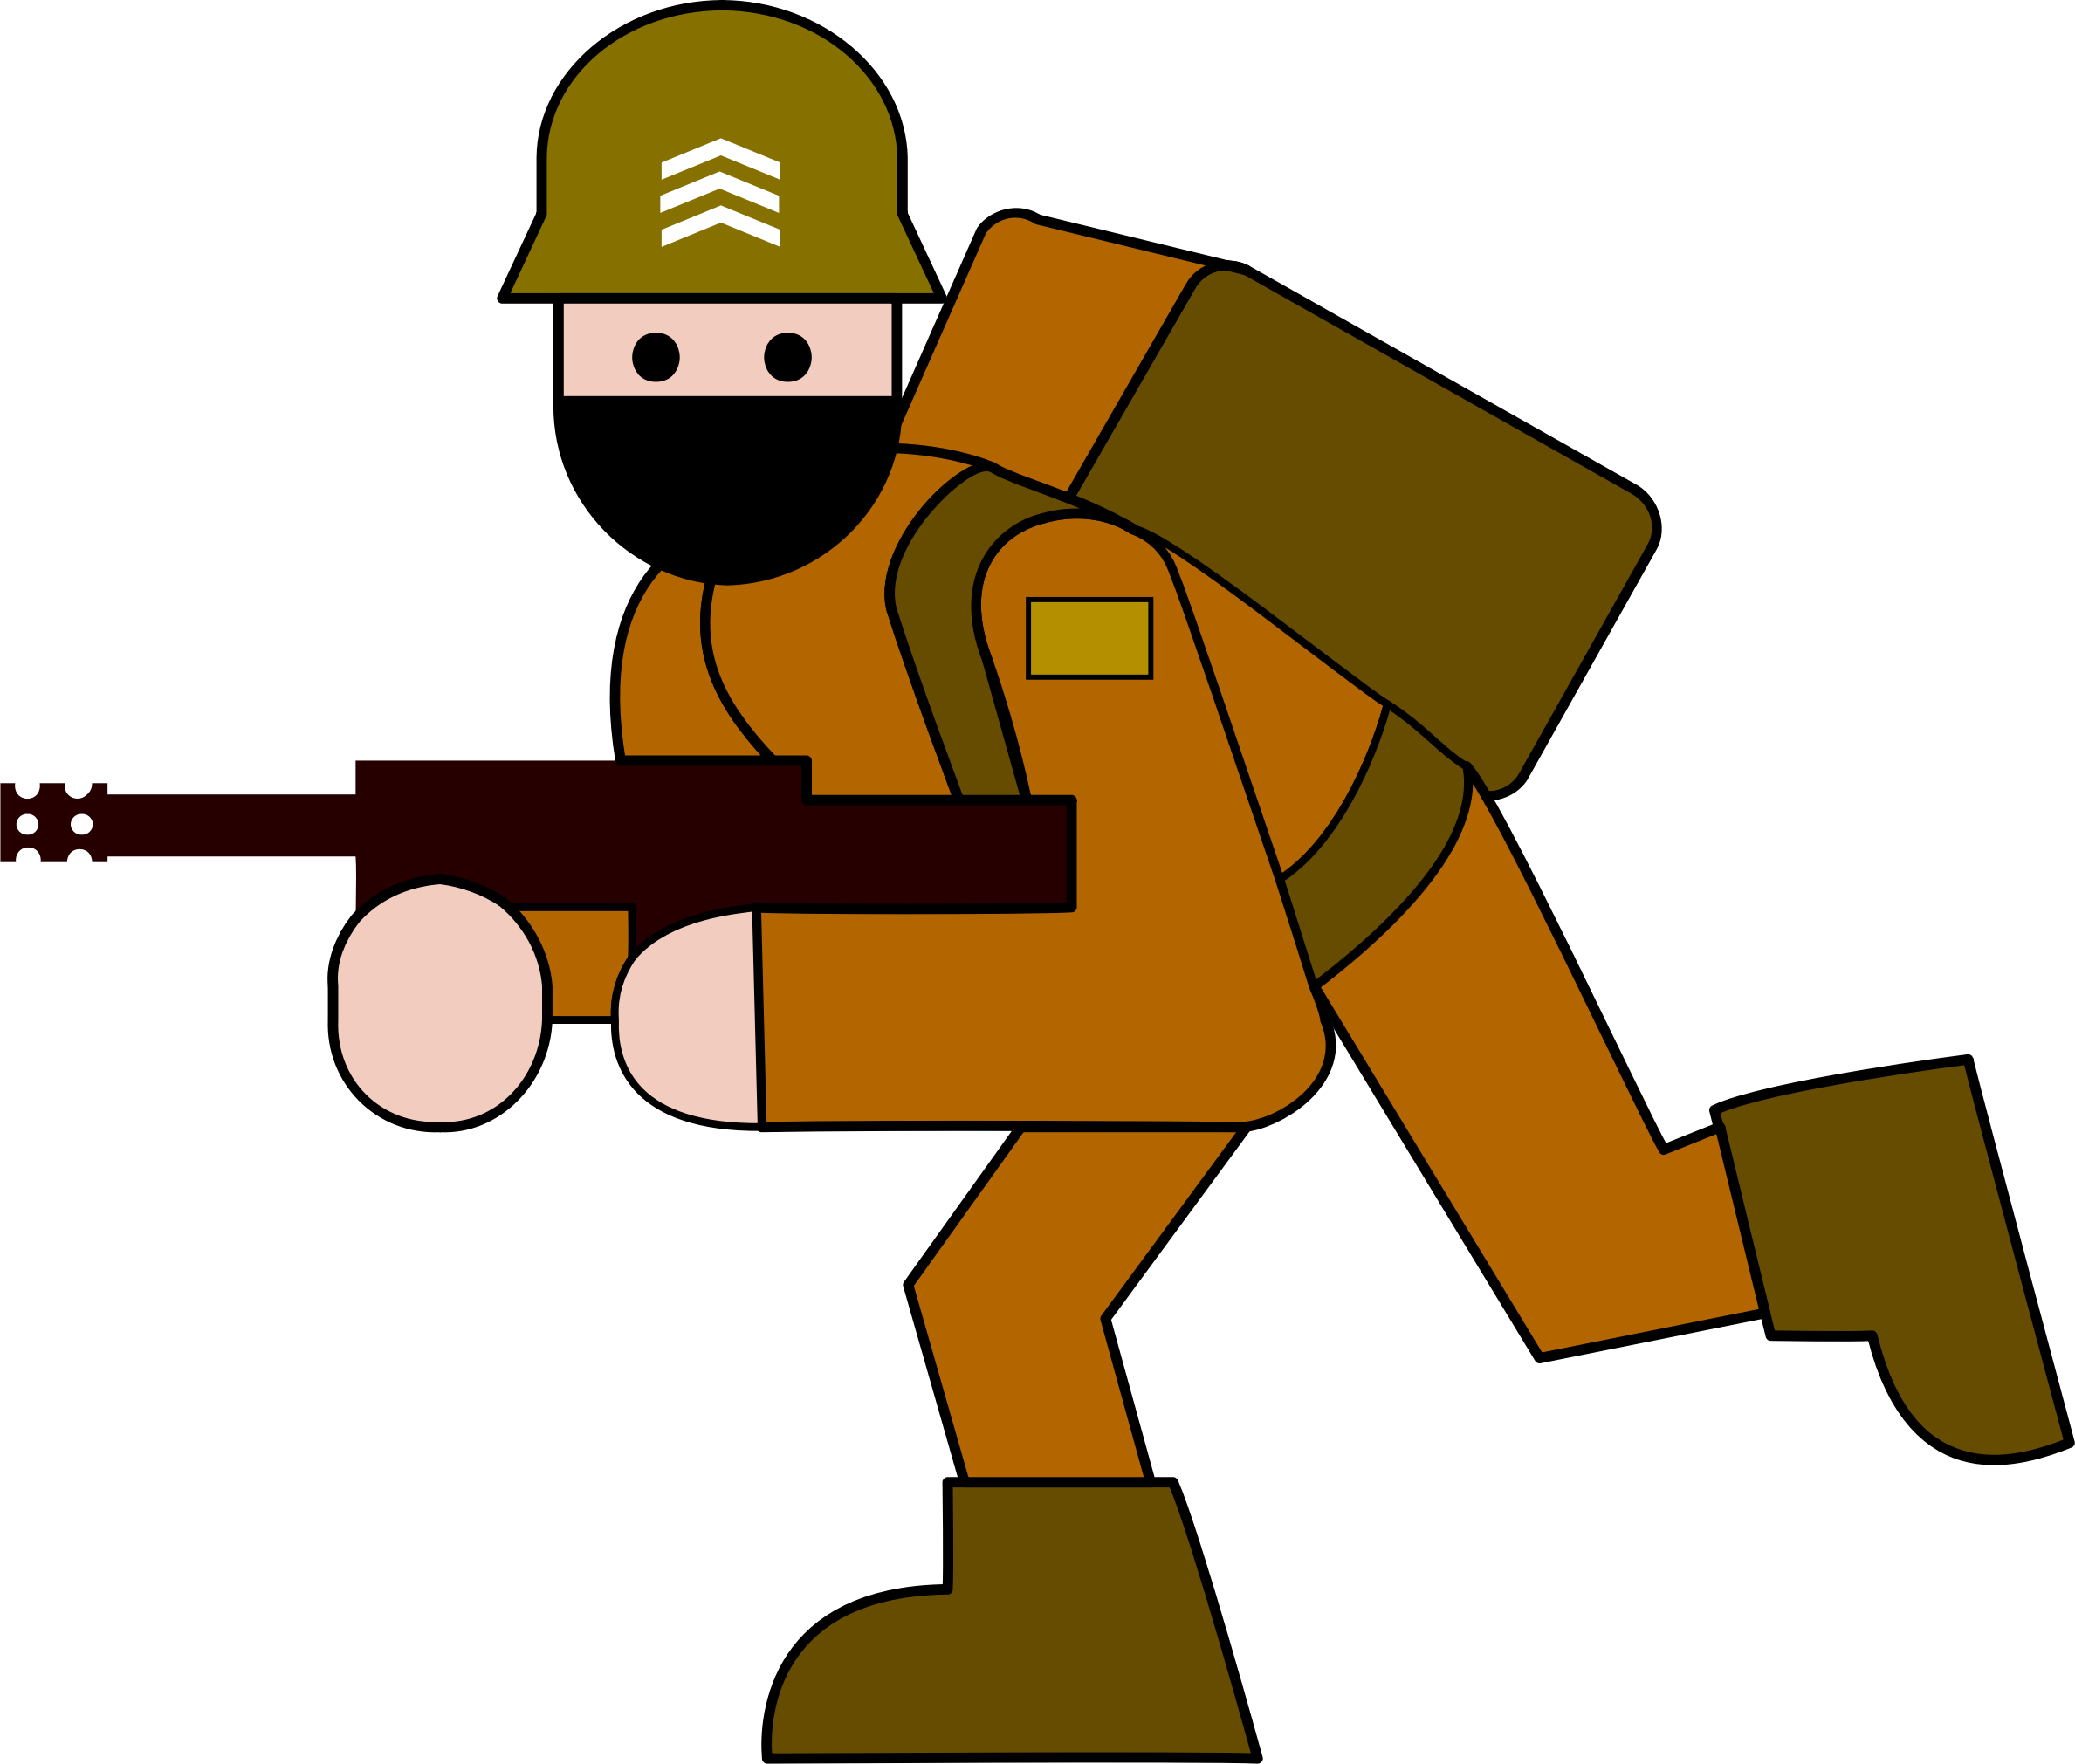 Soldier big image png. Soldiers clipart military